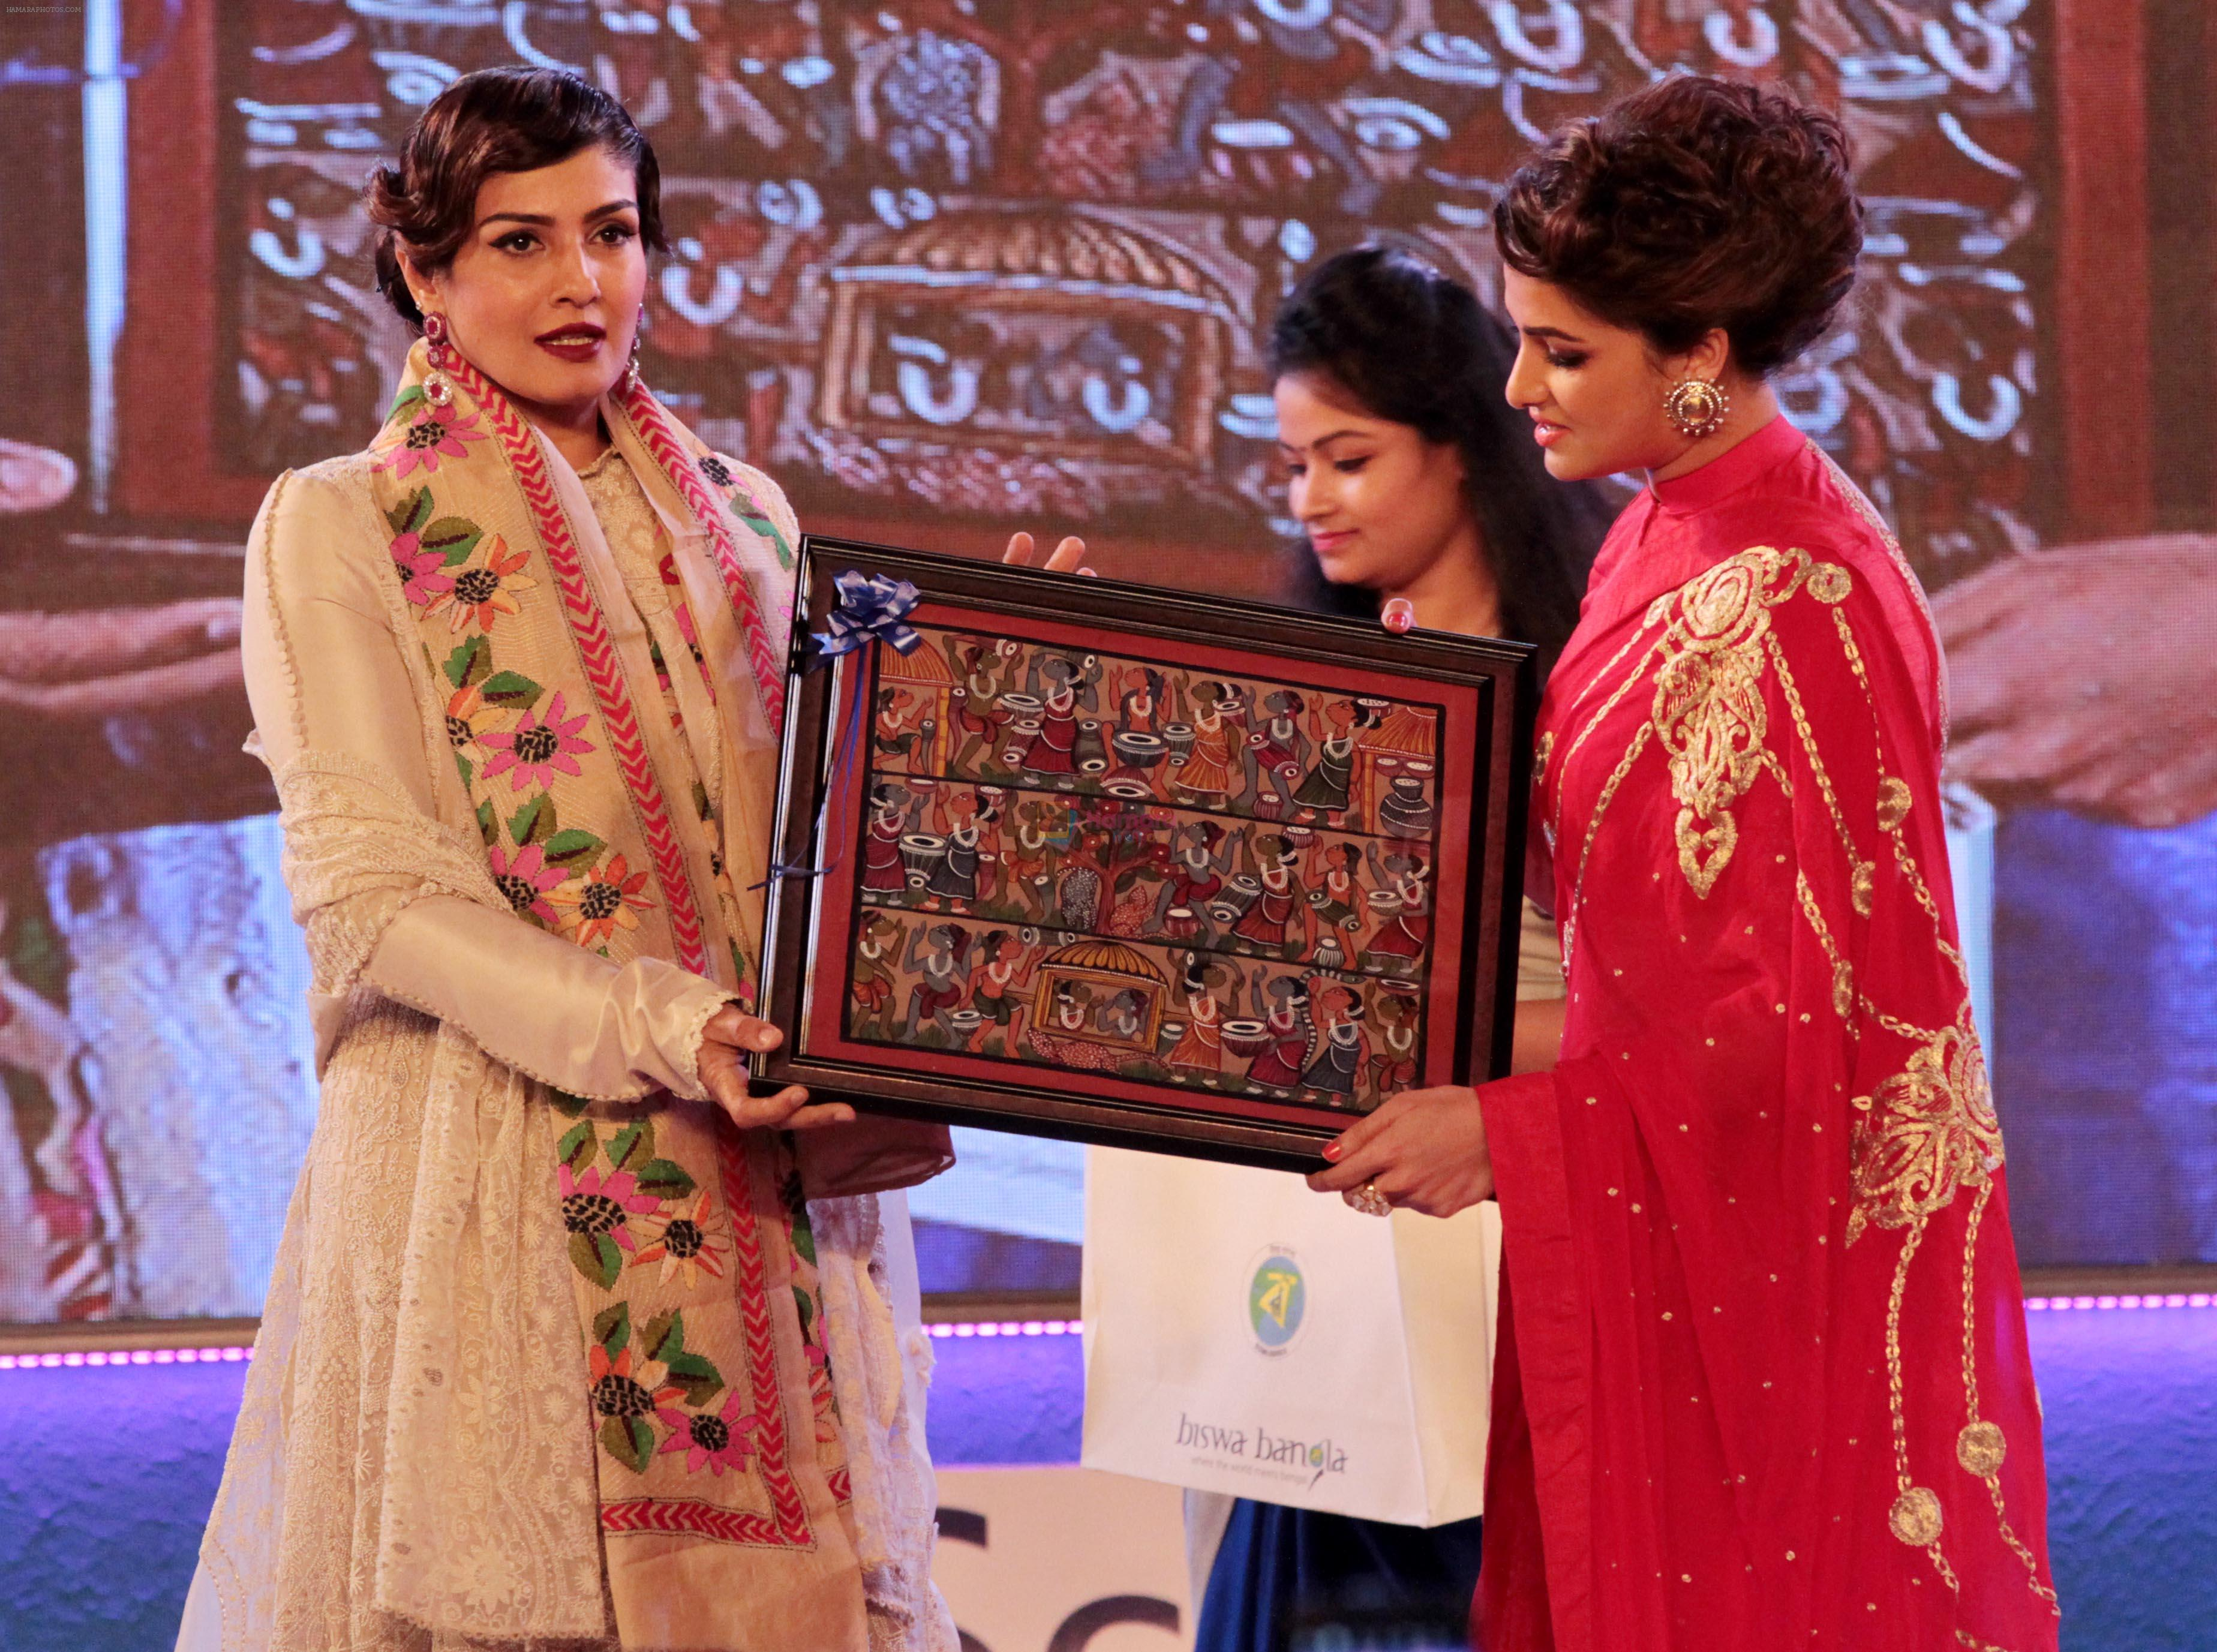 Raveena Tandon at closing ceremony of Kolkata film festival on 18th Nov 2016